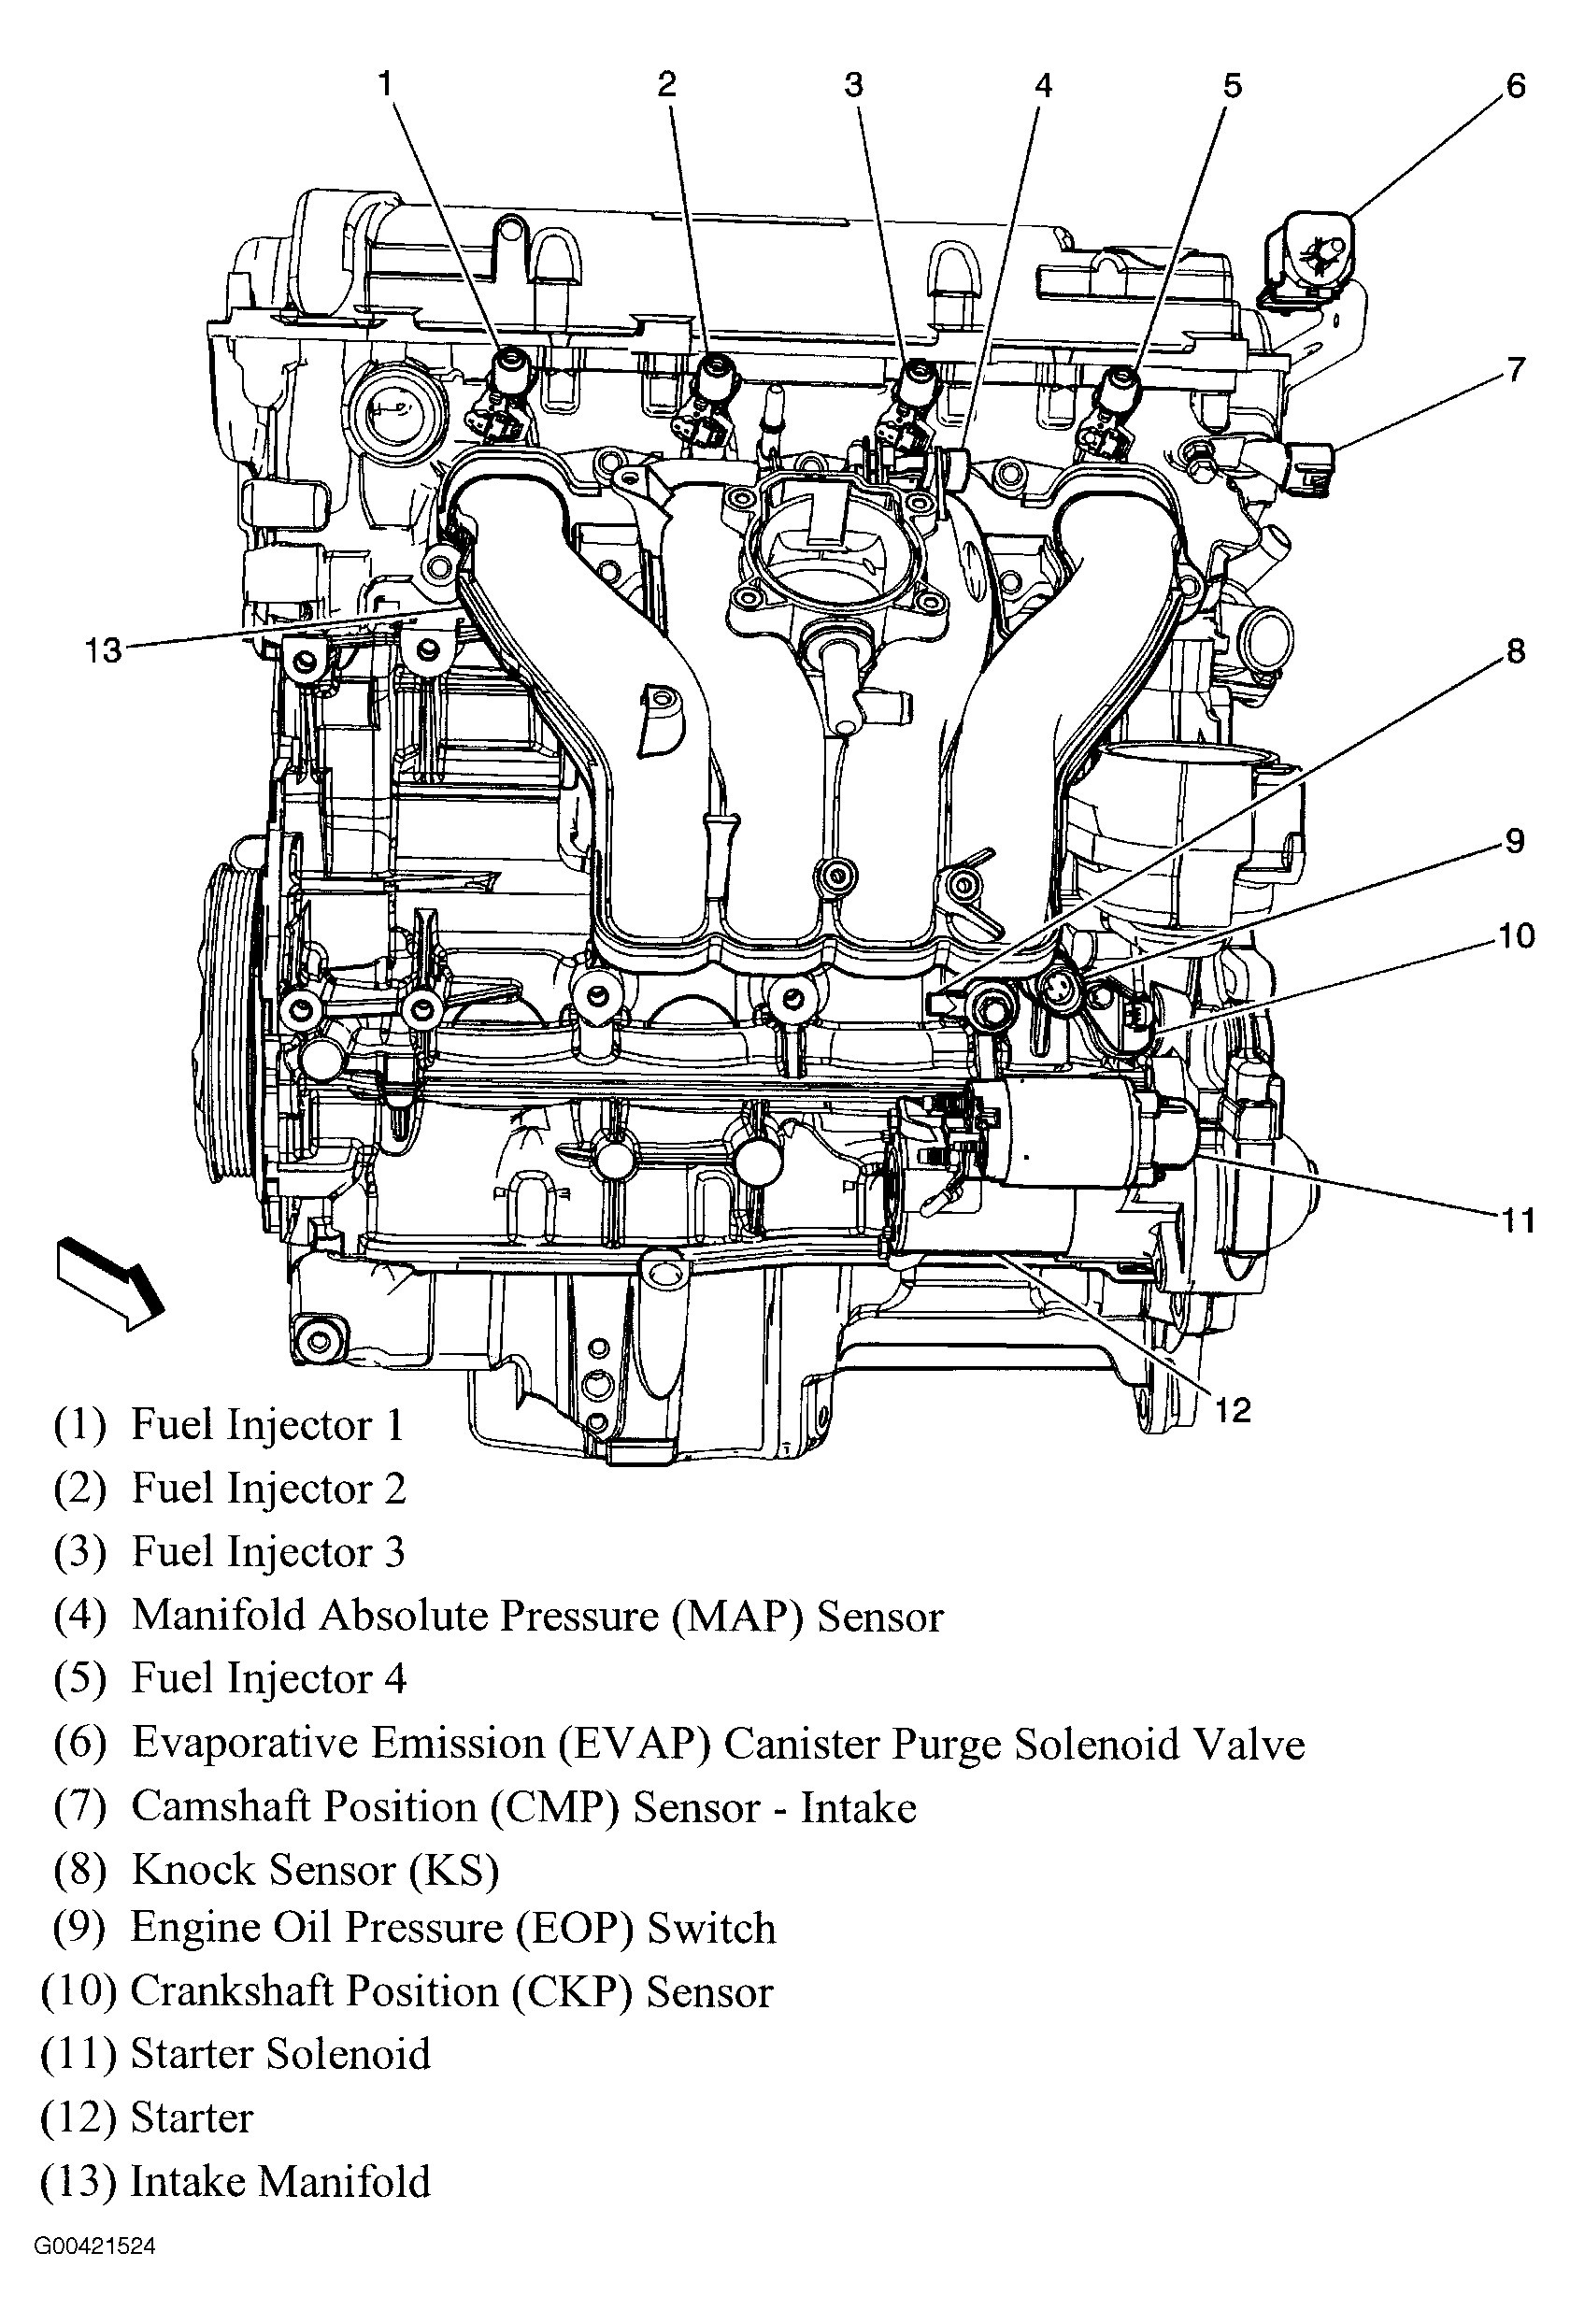 2002 Chevy Aveo Engine Diagram Wiring Online Ventilation For 2009 Schematic Diagrams 2008 Pcv